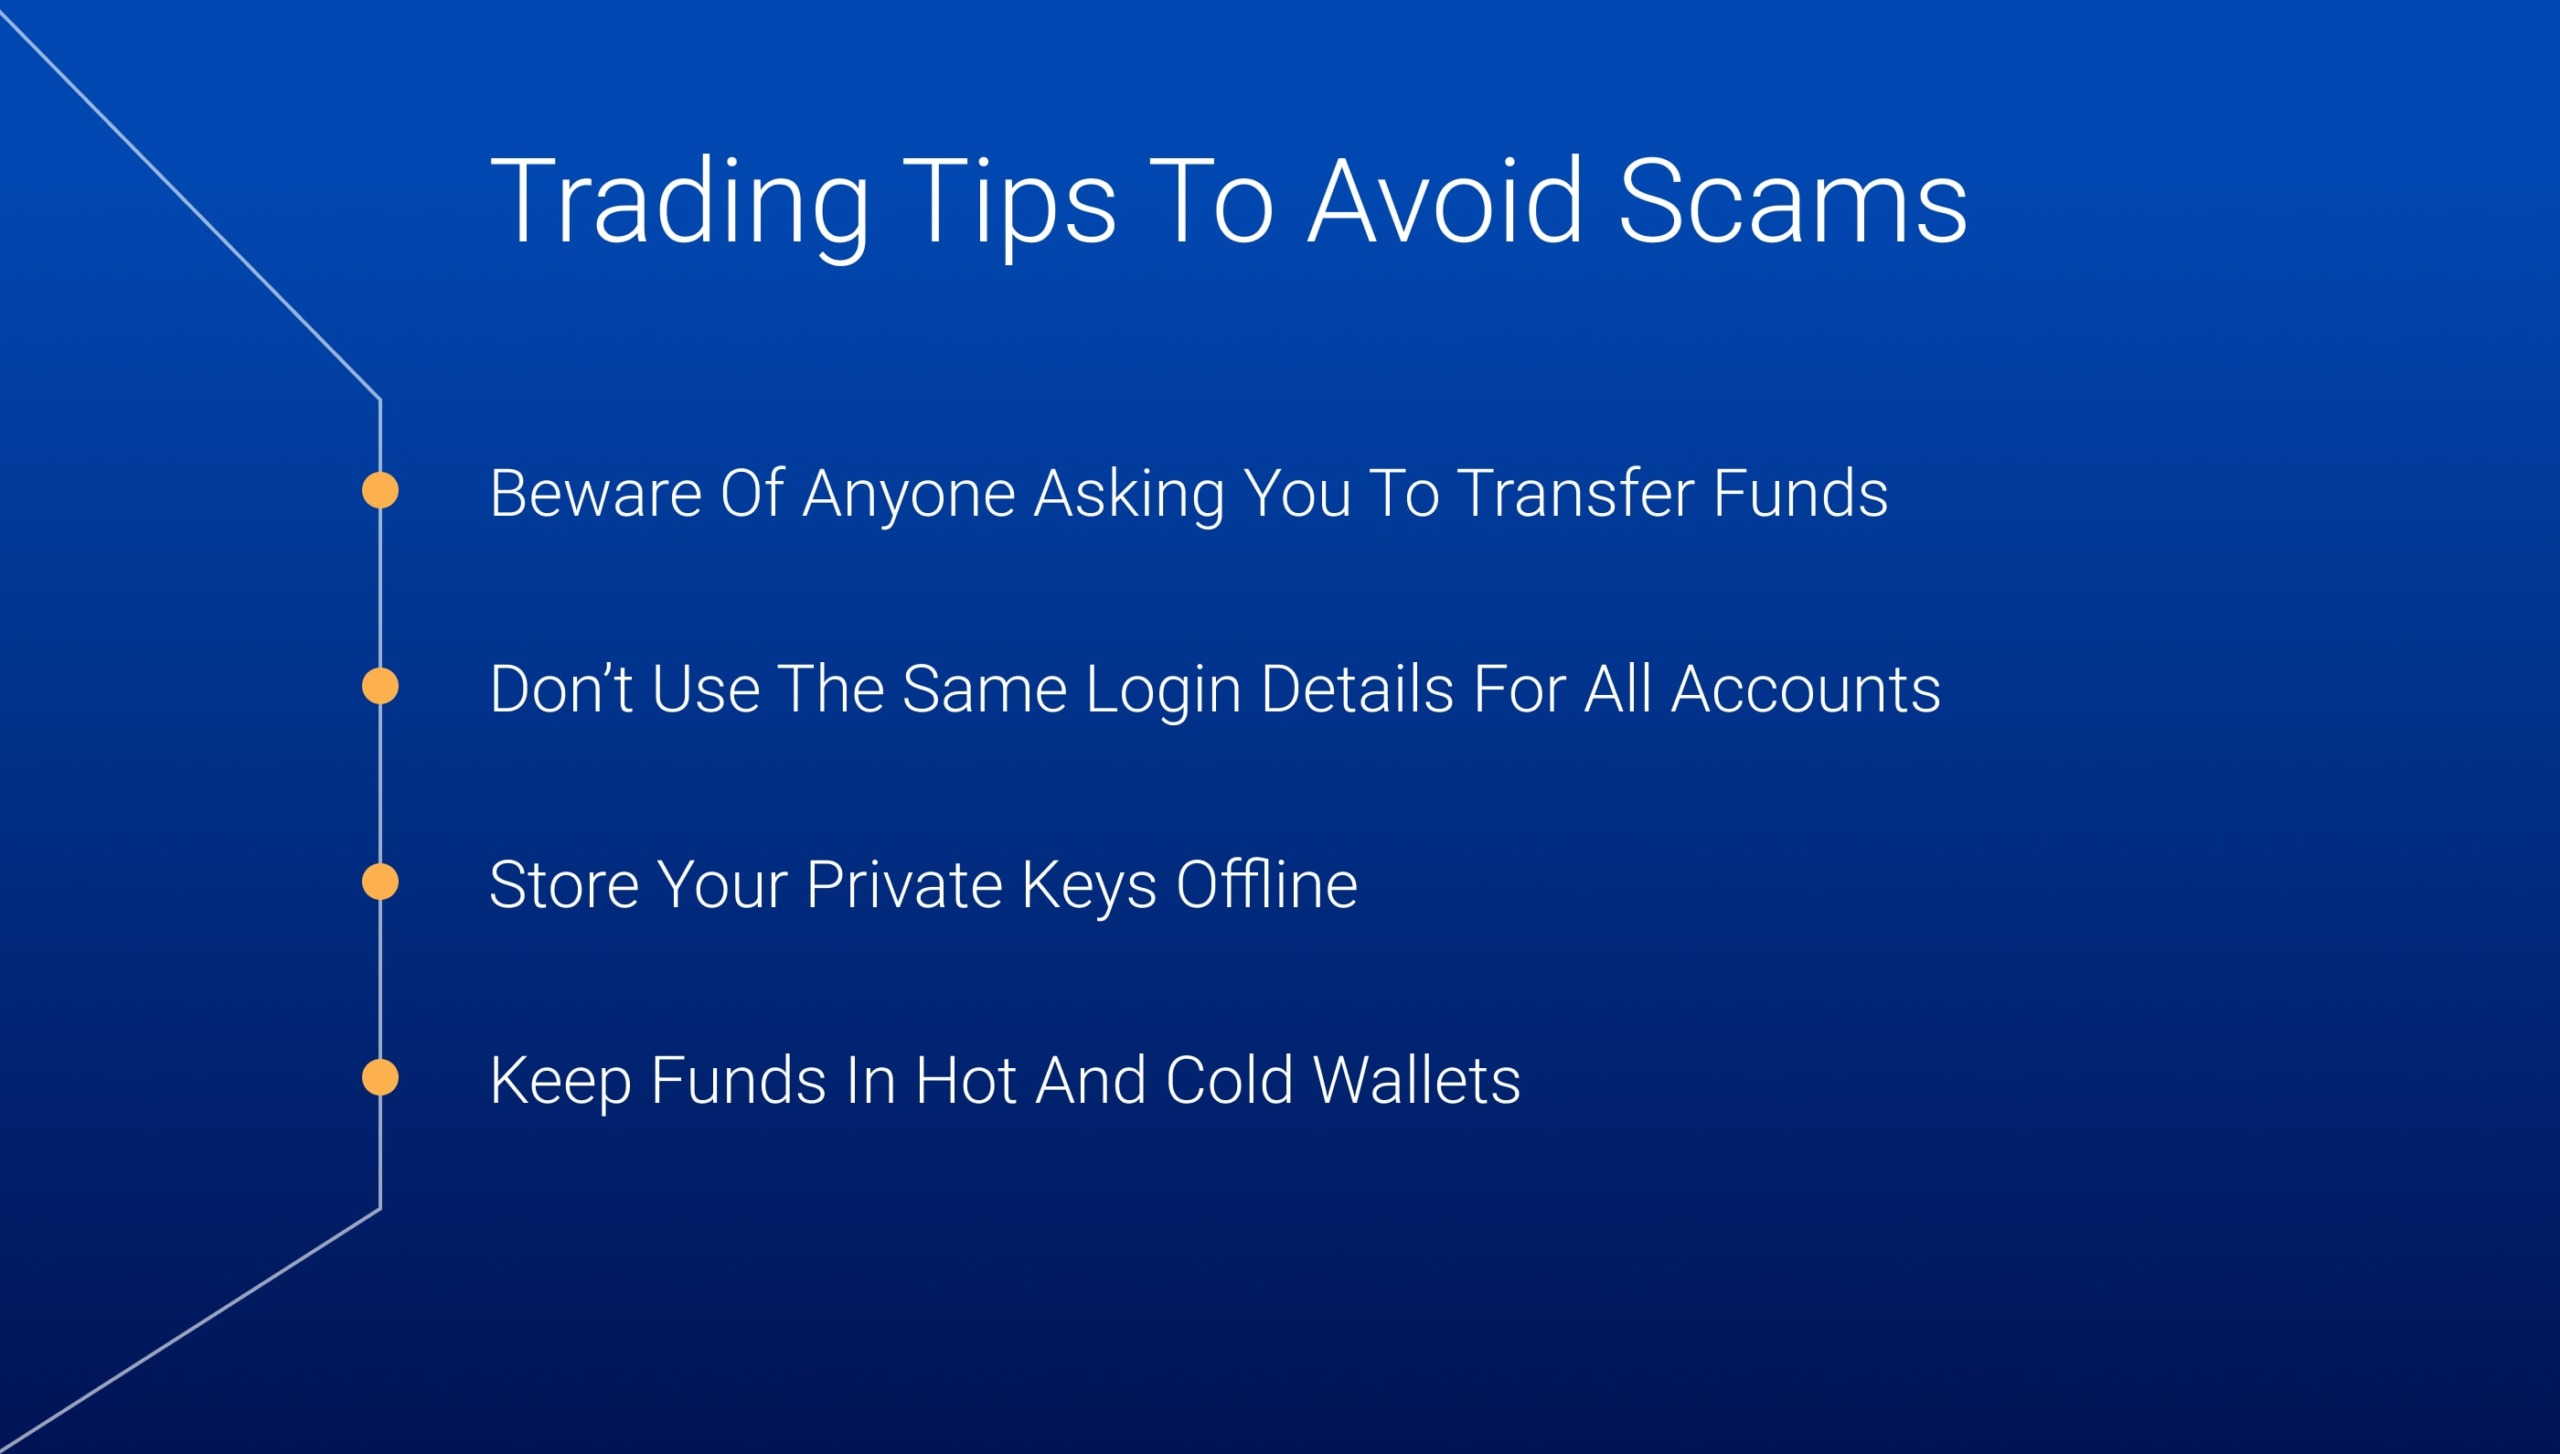 Trading tips to avoid scams in cryptocurrency